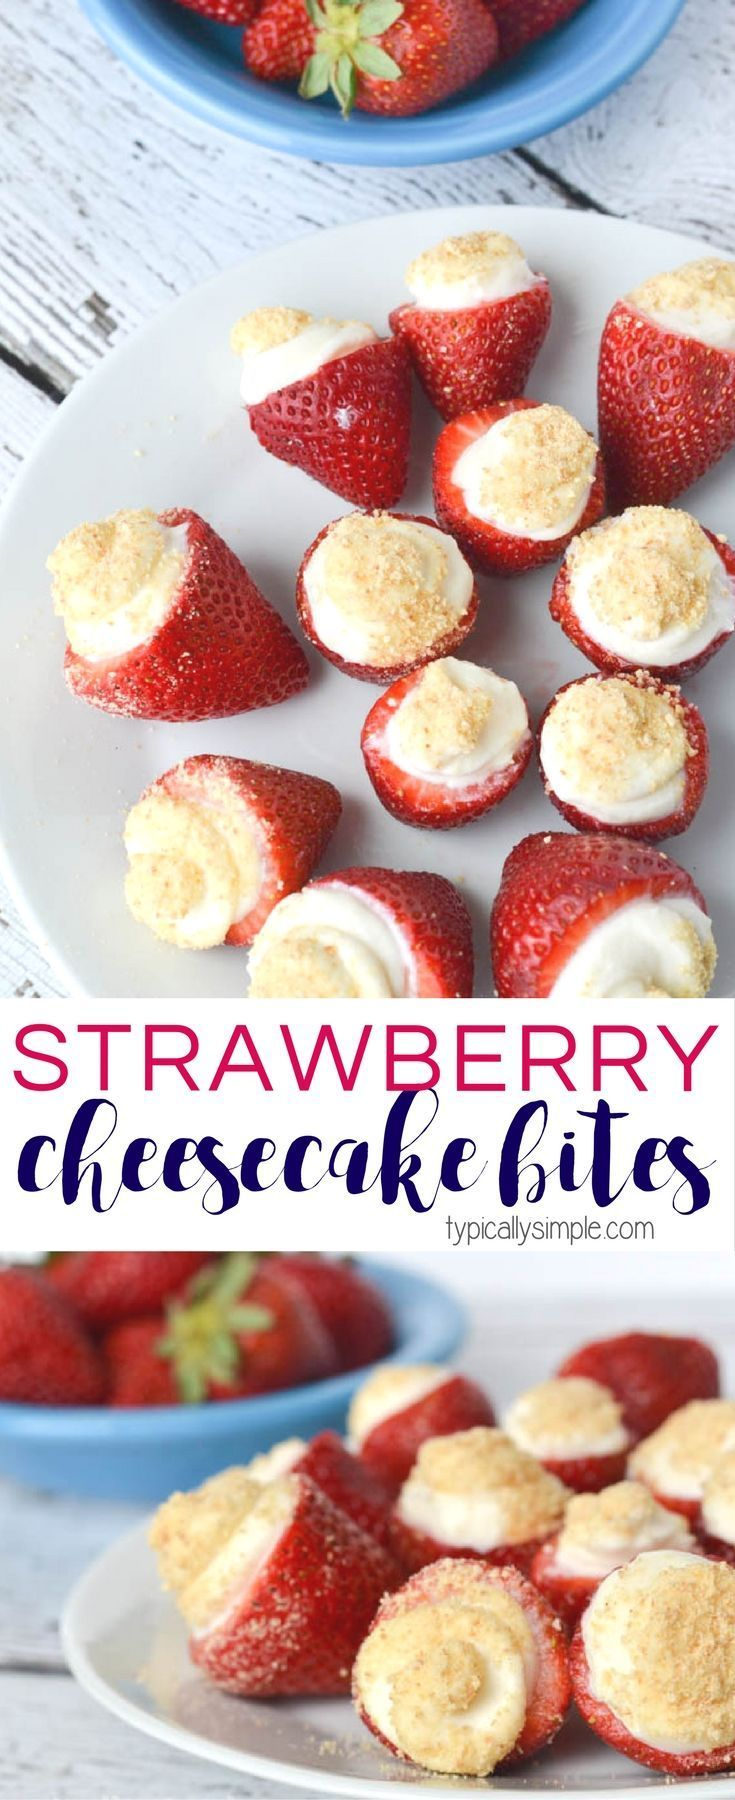 Kein Bake Strawberry Cheesecake Bites #enklaefterrätter